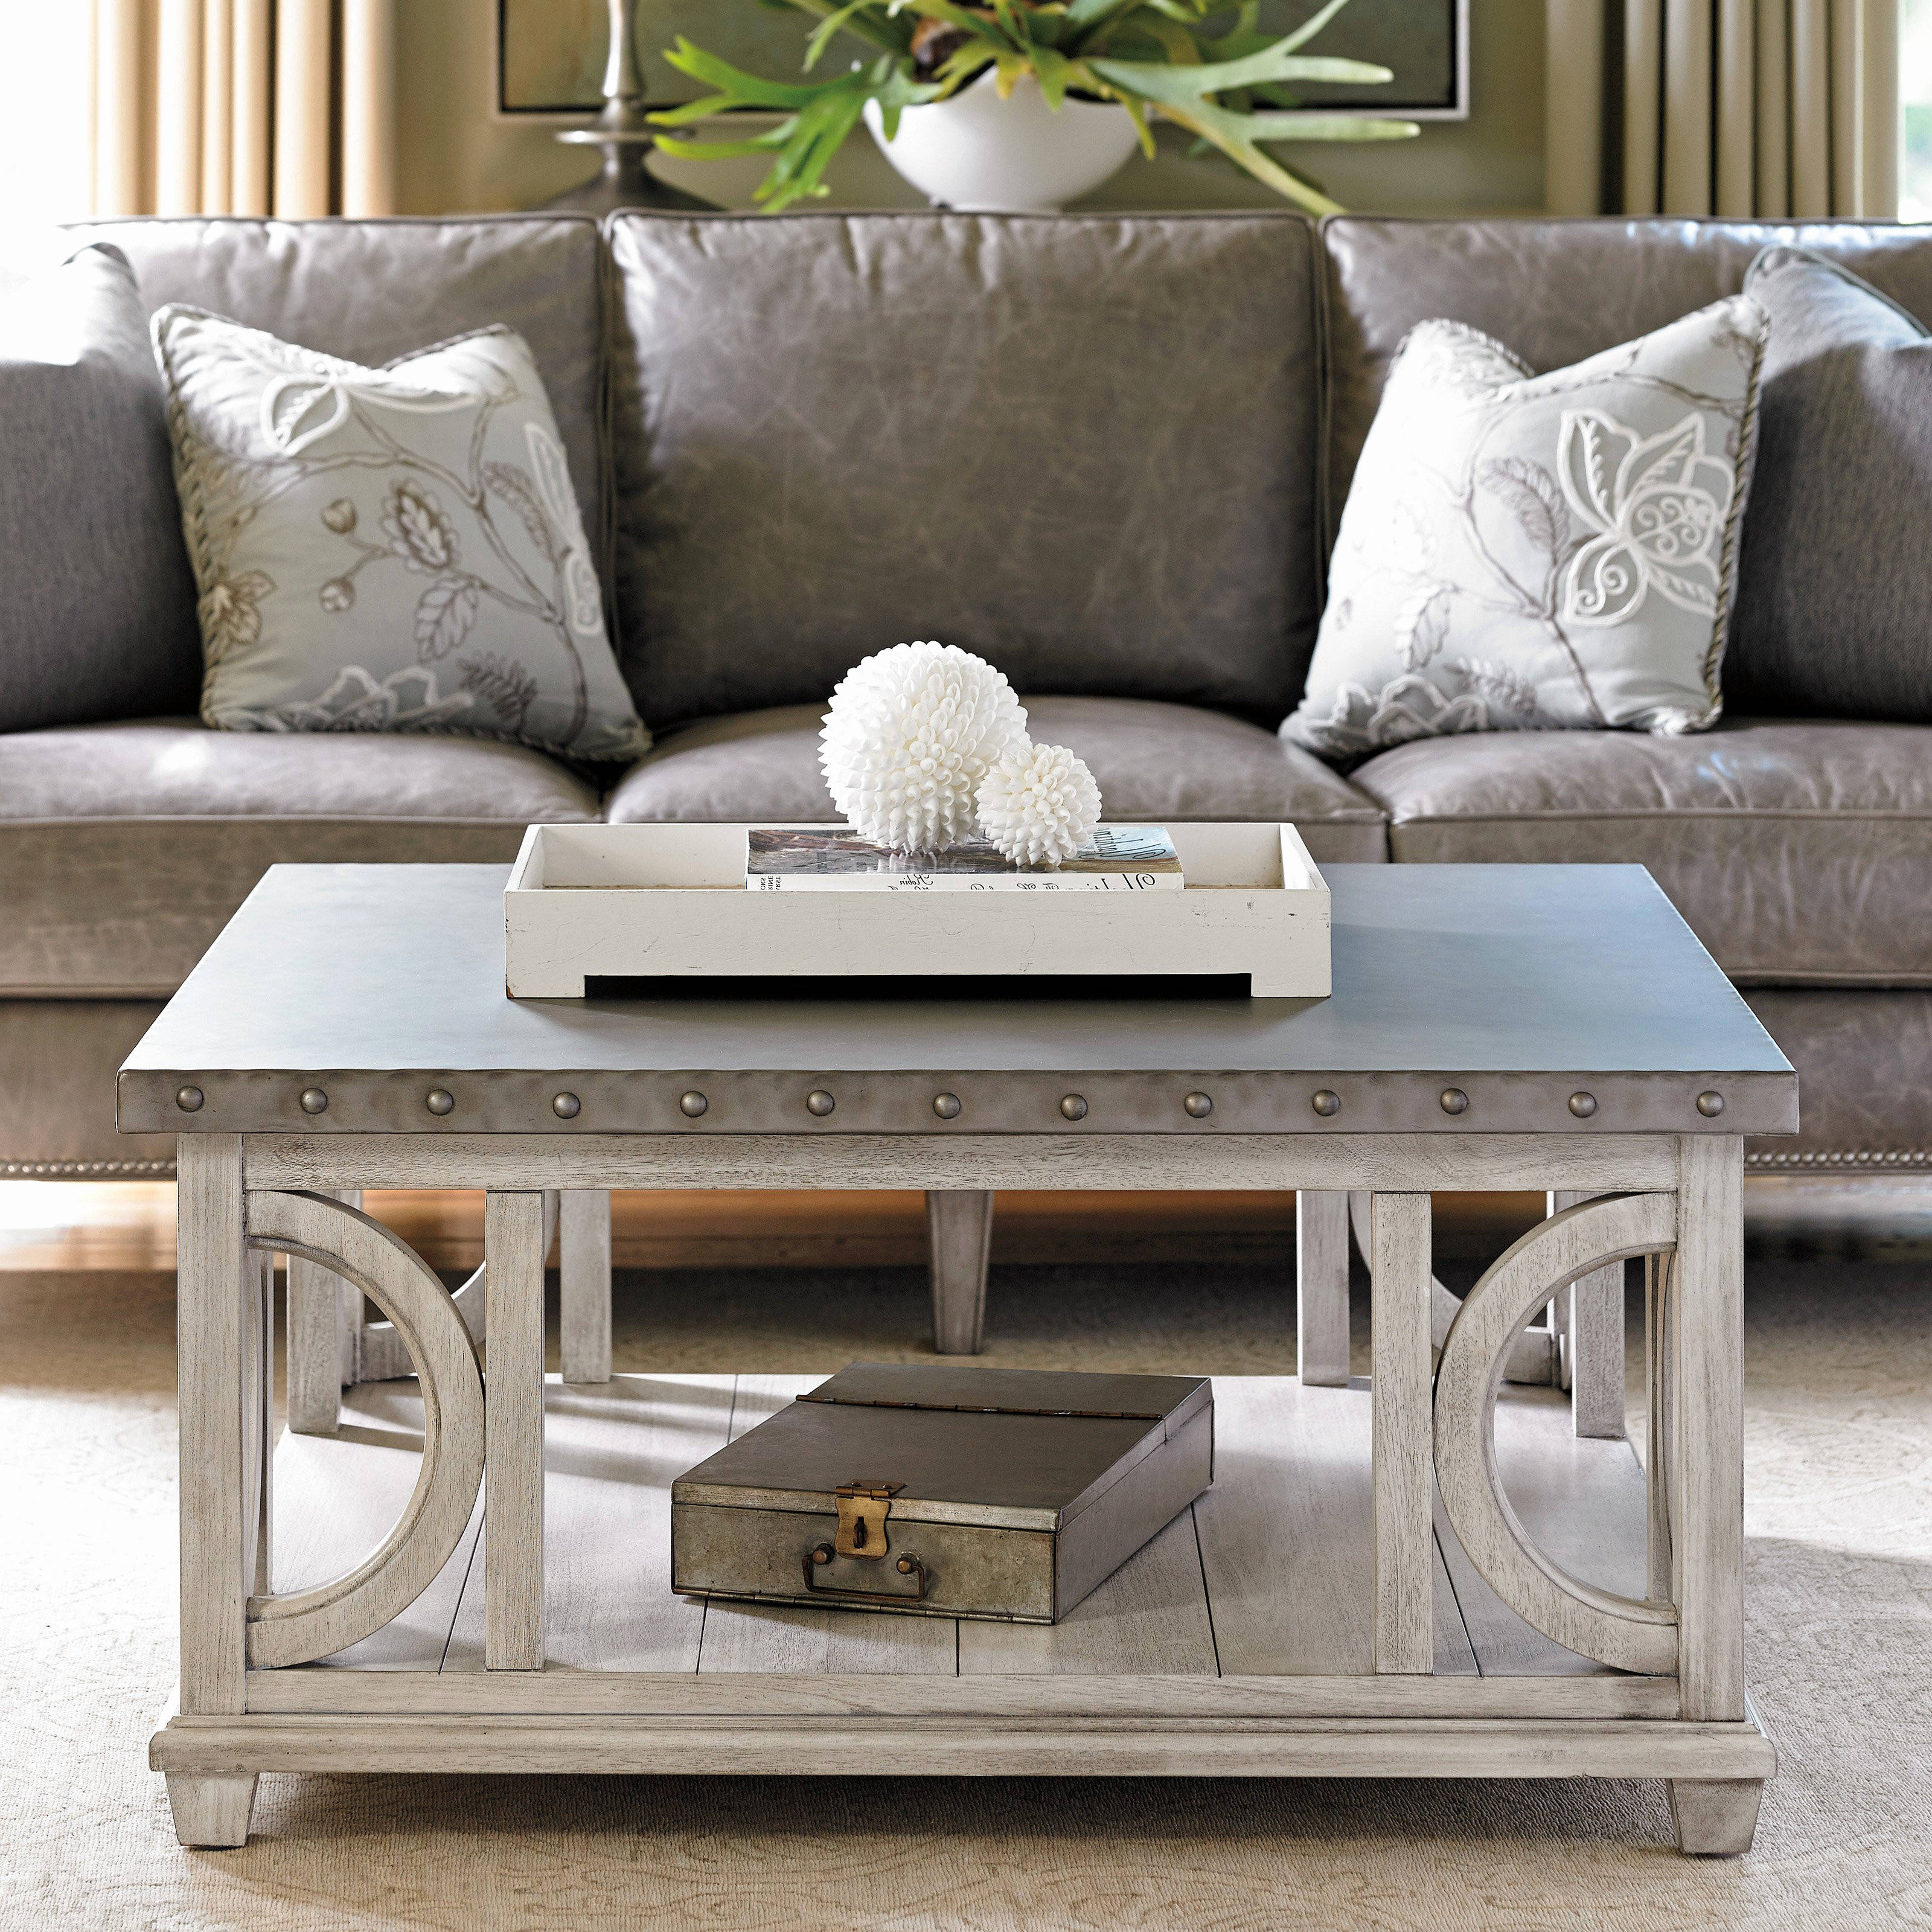 Popular Joanna Gaines Coffee Table Best Of Magnolia Home Iron Trestle In Magnolia Home Iron Trestle Cocktail Tables (Gallery 20 of 20)